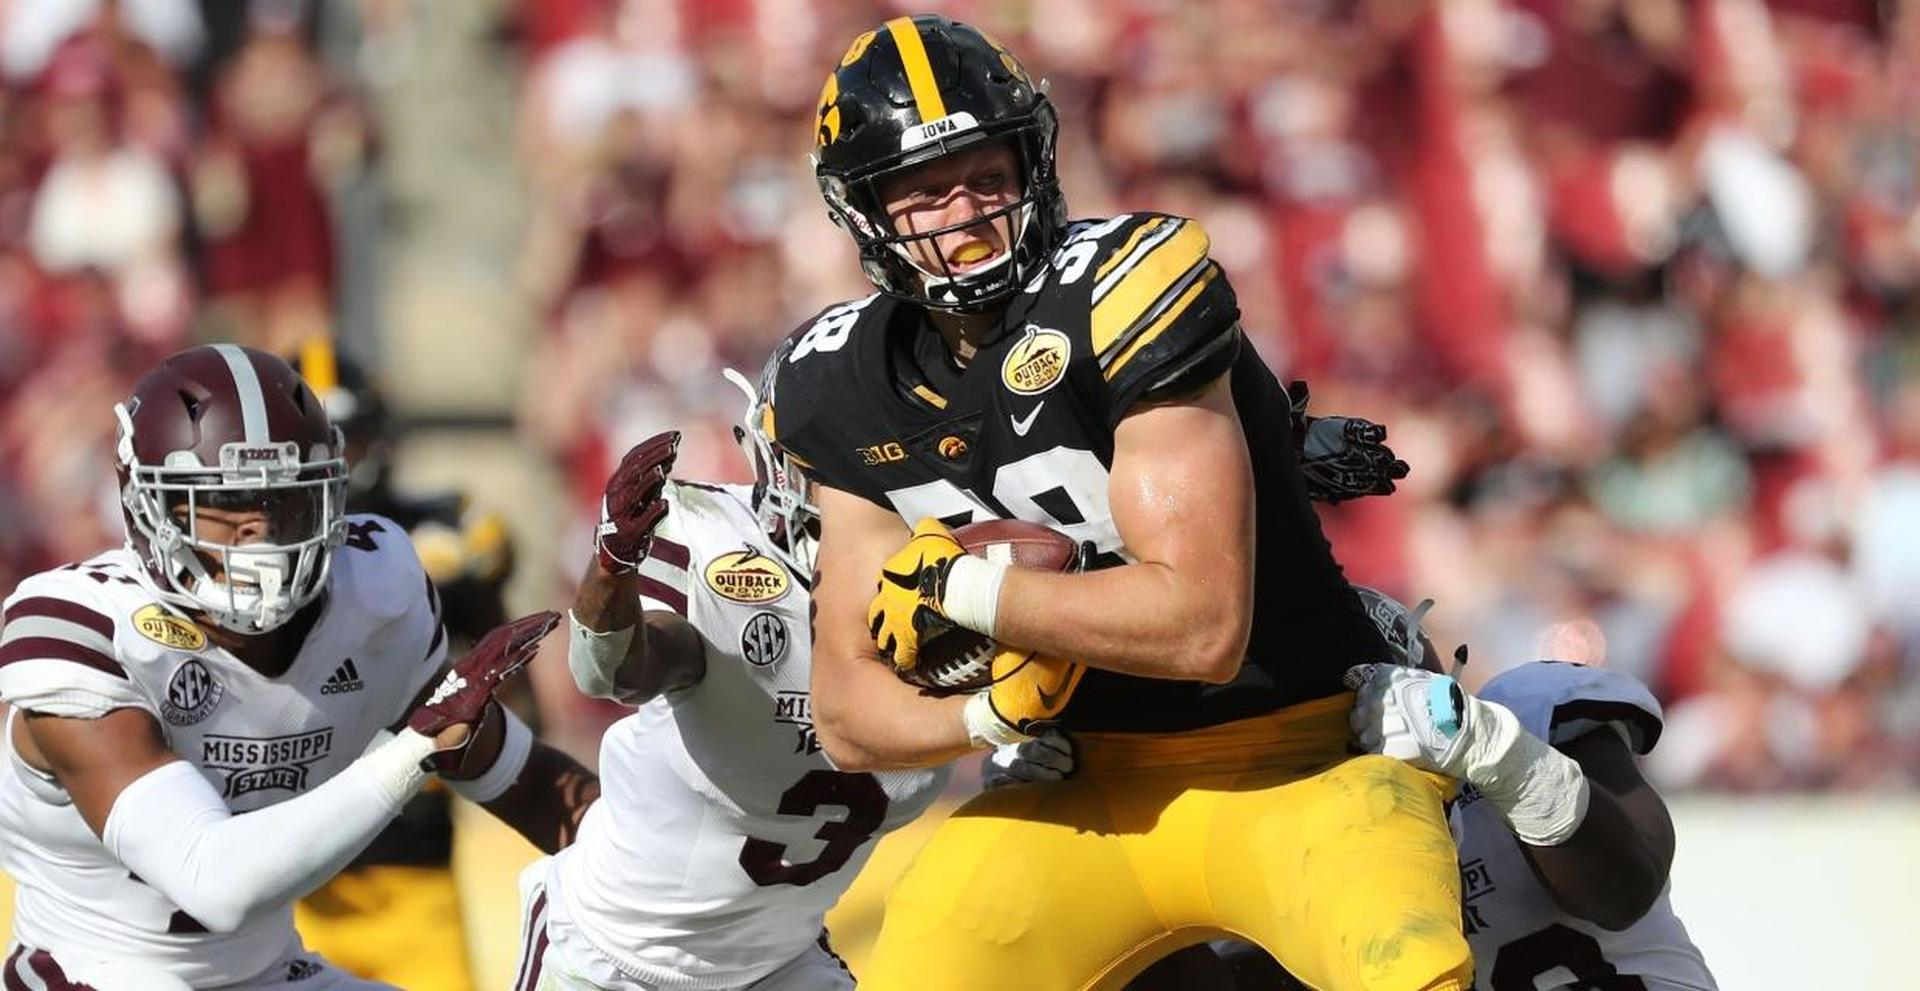 T.J. Hockenson NFL Draft profile: Everything to know about pro day, measurements, strengths, team fits